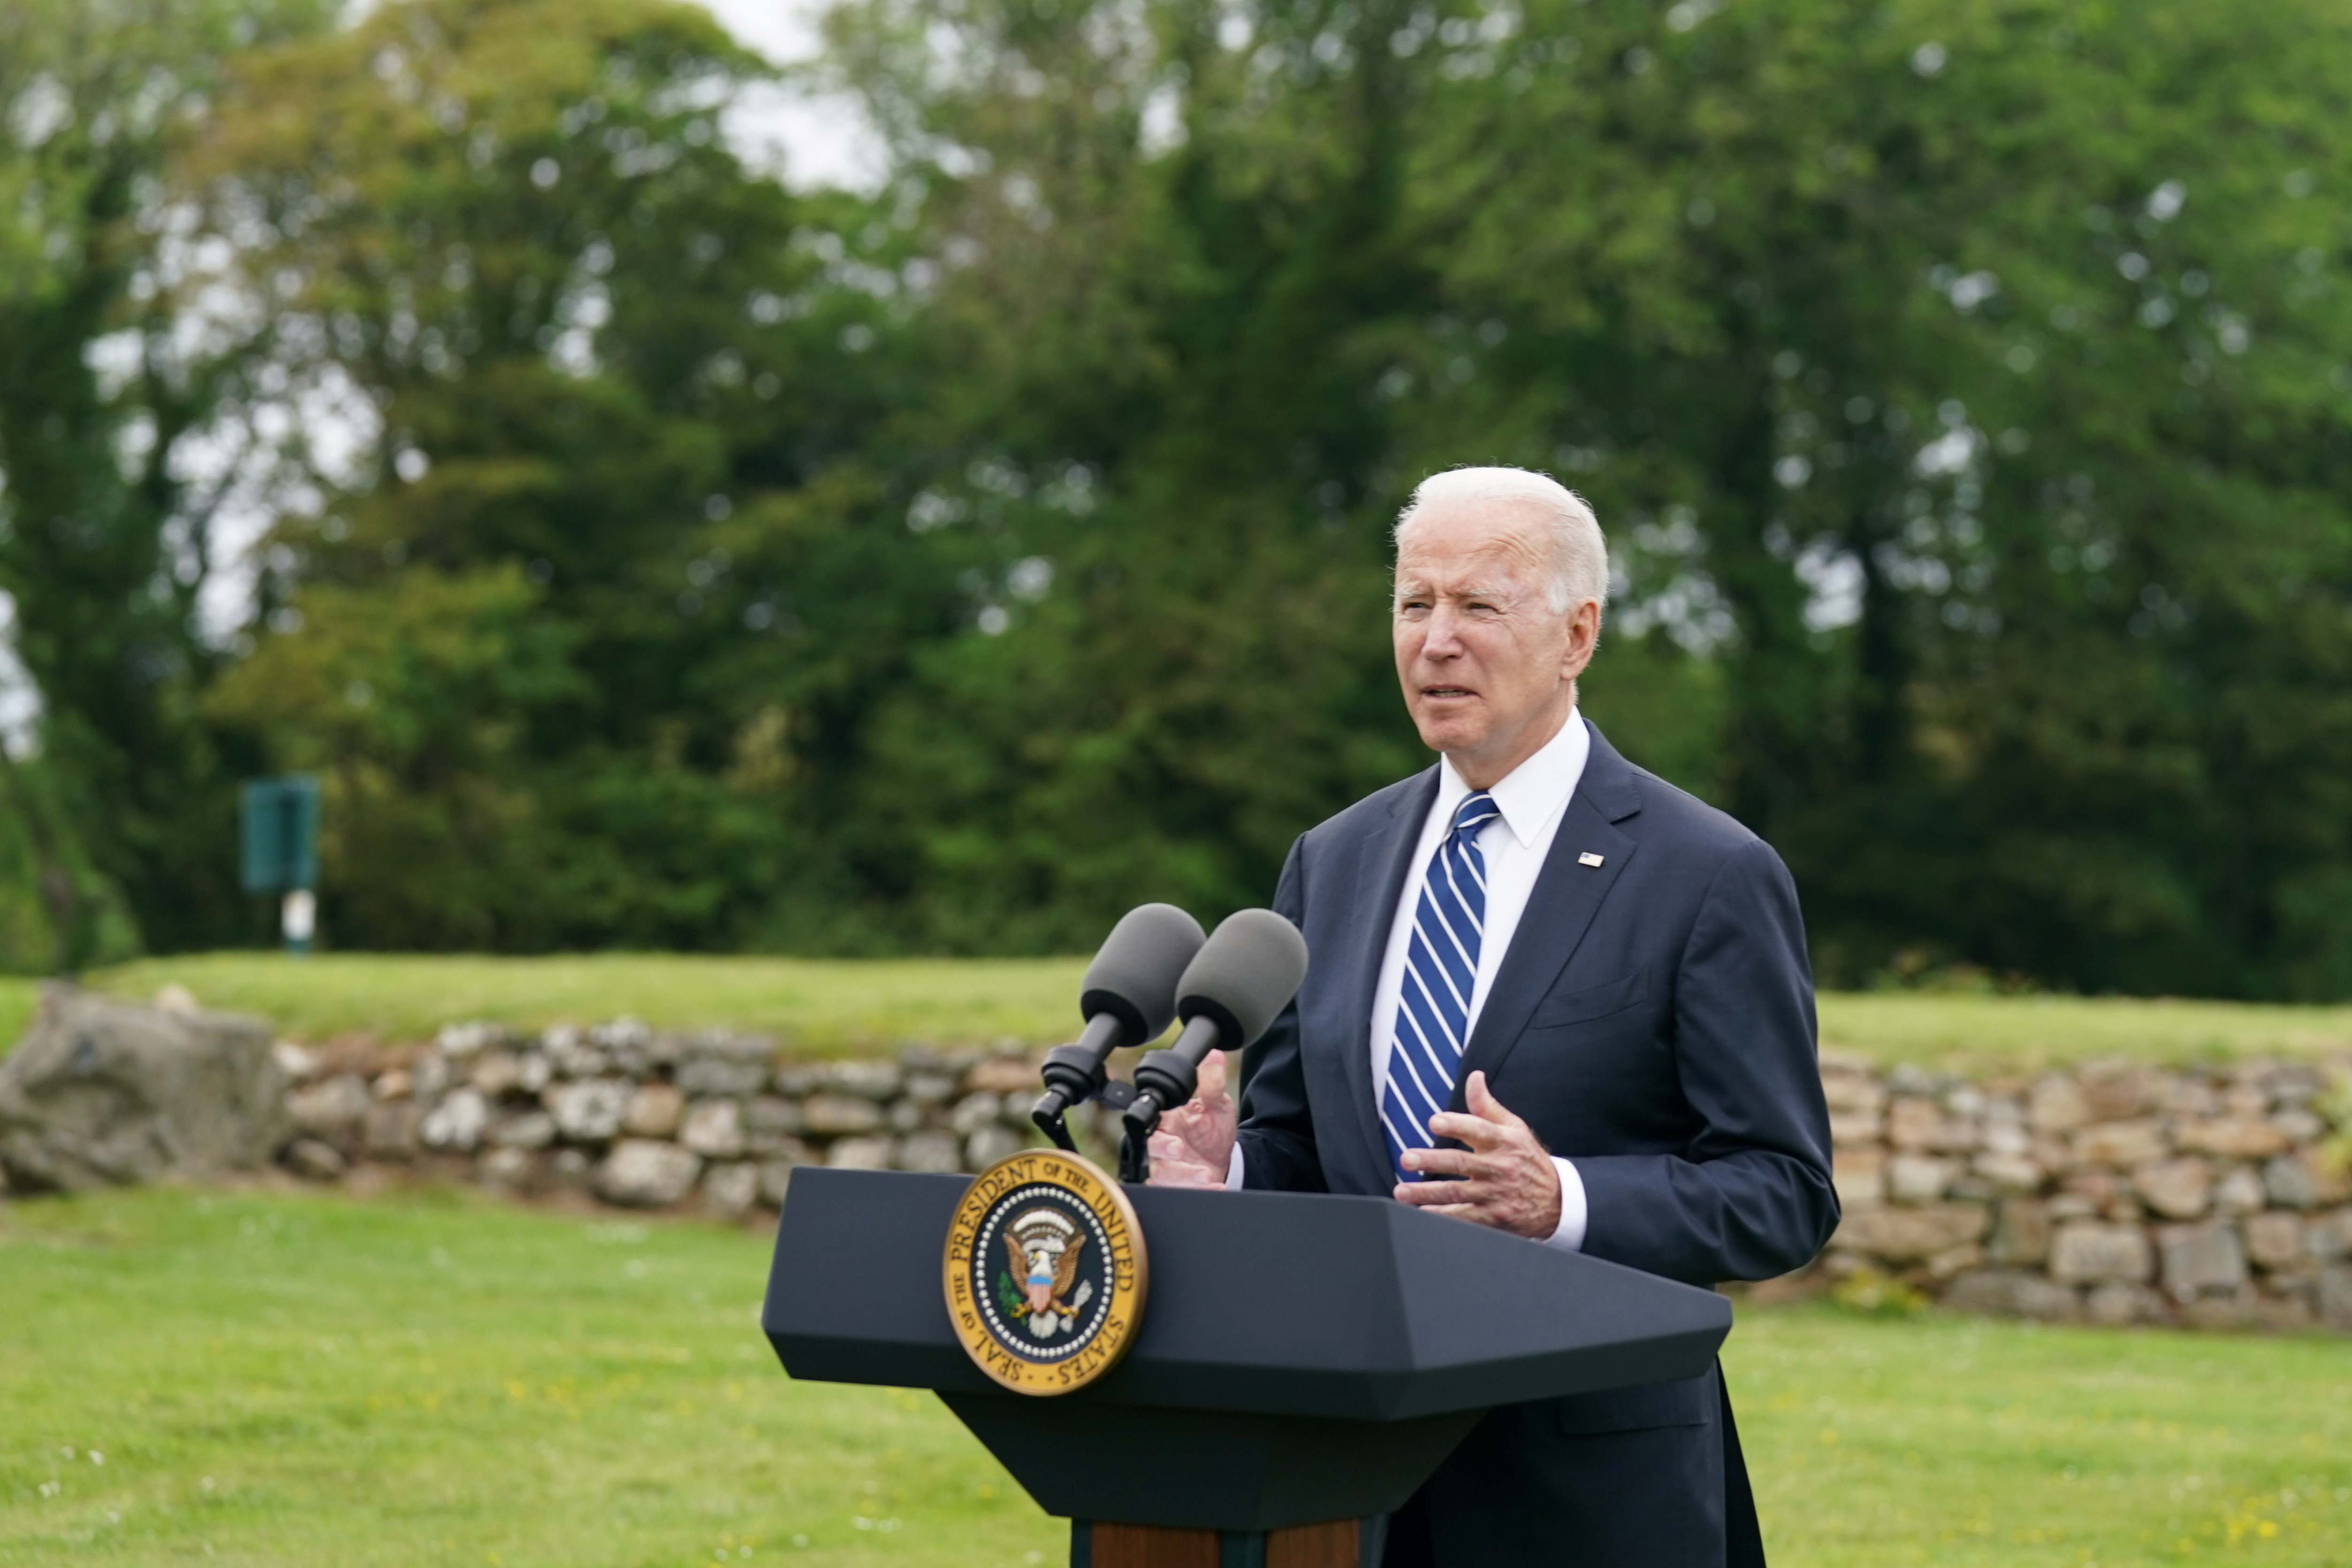 U.S. President Joe Biden speaks about his administration's pledge to donate 500 million doses of the Pfizer (PFE.N) coronavirus vaccine to the world's poorest countries, during a visit to St. Ives in Cornwall, Britain, June 10, 2021. REUTERS/ Kevin Lamarque - RC2M6H92RBG2